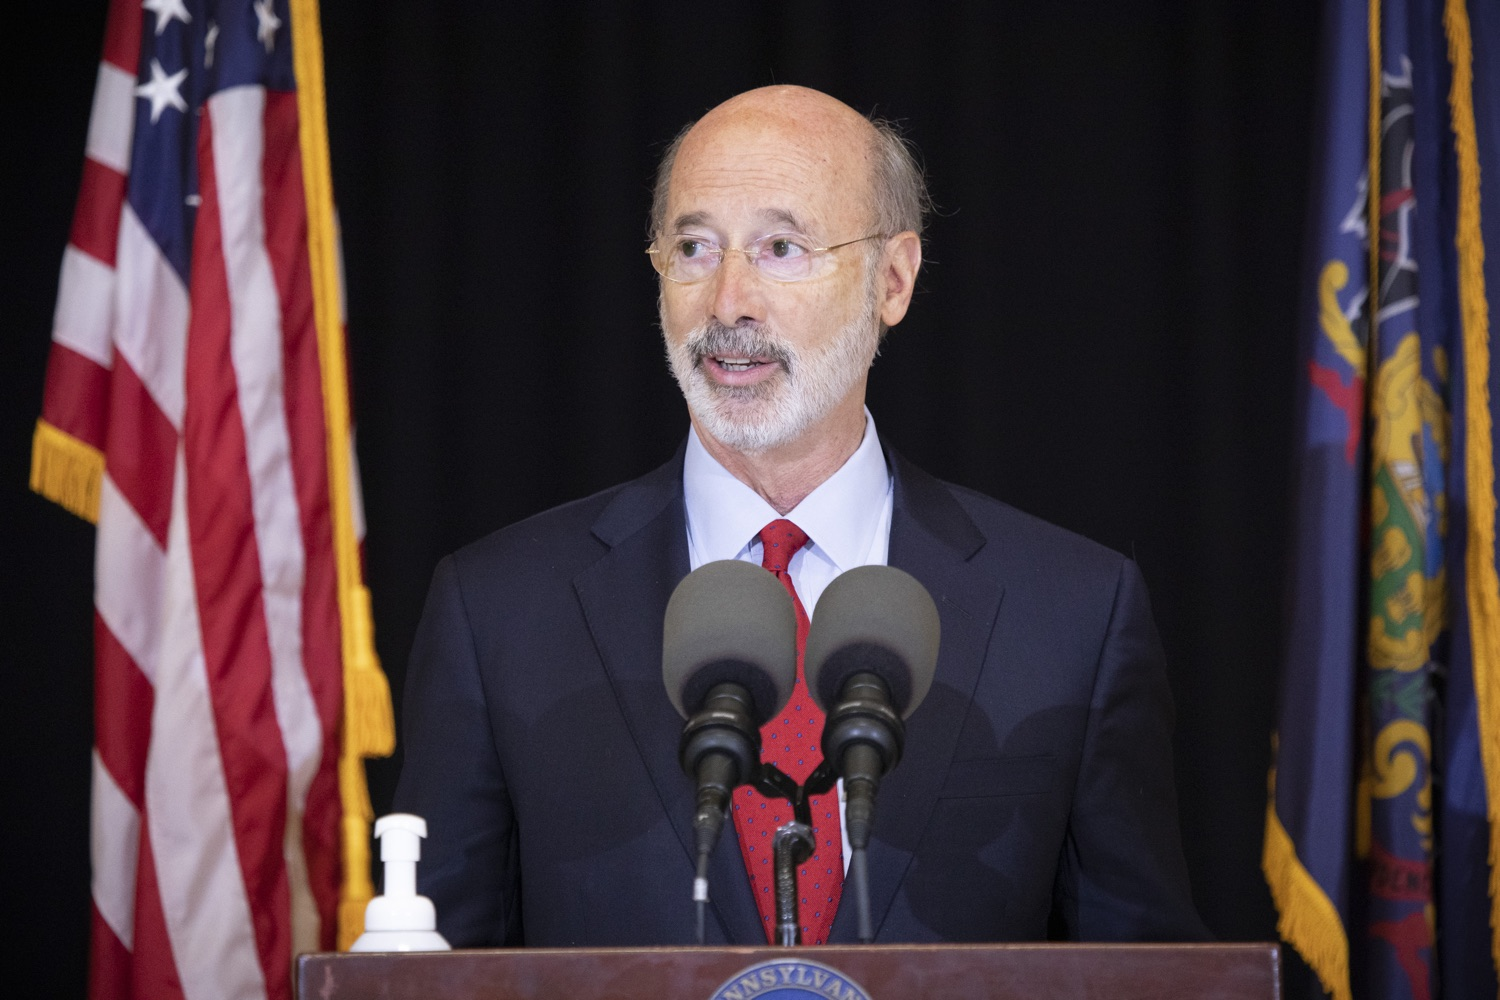 """<a href=""""https://filesource.wostreaming.net/commonwealthofpa/photo/18310_gov_adult_use_cannabis_dz_002.jpg"""" target=""""_blank"""">⇣Download Photo<br></a>Governor Tom Wolf speaks to the press.Governor Tom Wolf visited The Mountain Center in Tobyhanna, Monroe County today to talk about the economic growth potential and restorative justice benefits of legalizing adult-use cannabis, something the state General Assembly has not yet done despite multiple requests from the governor and Lieutenant Governor John Fetterman to take up legislation this fall.  Tobyhanna, PA  October 13, 2020"""